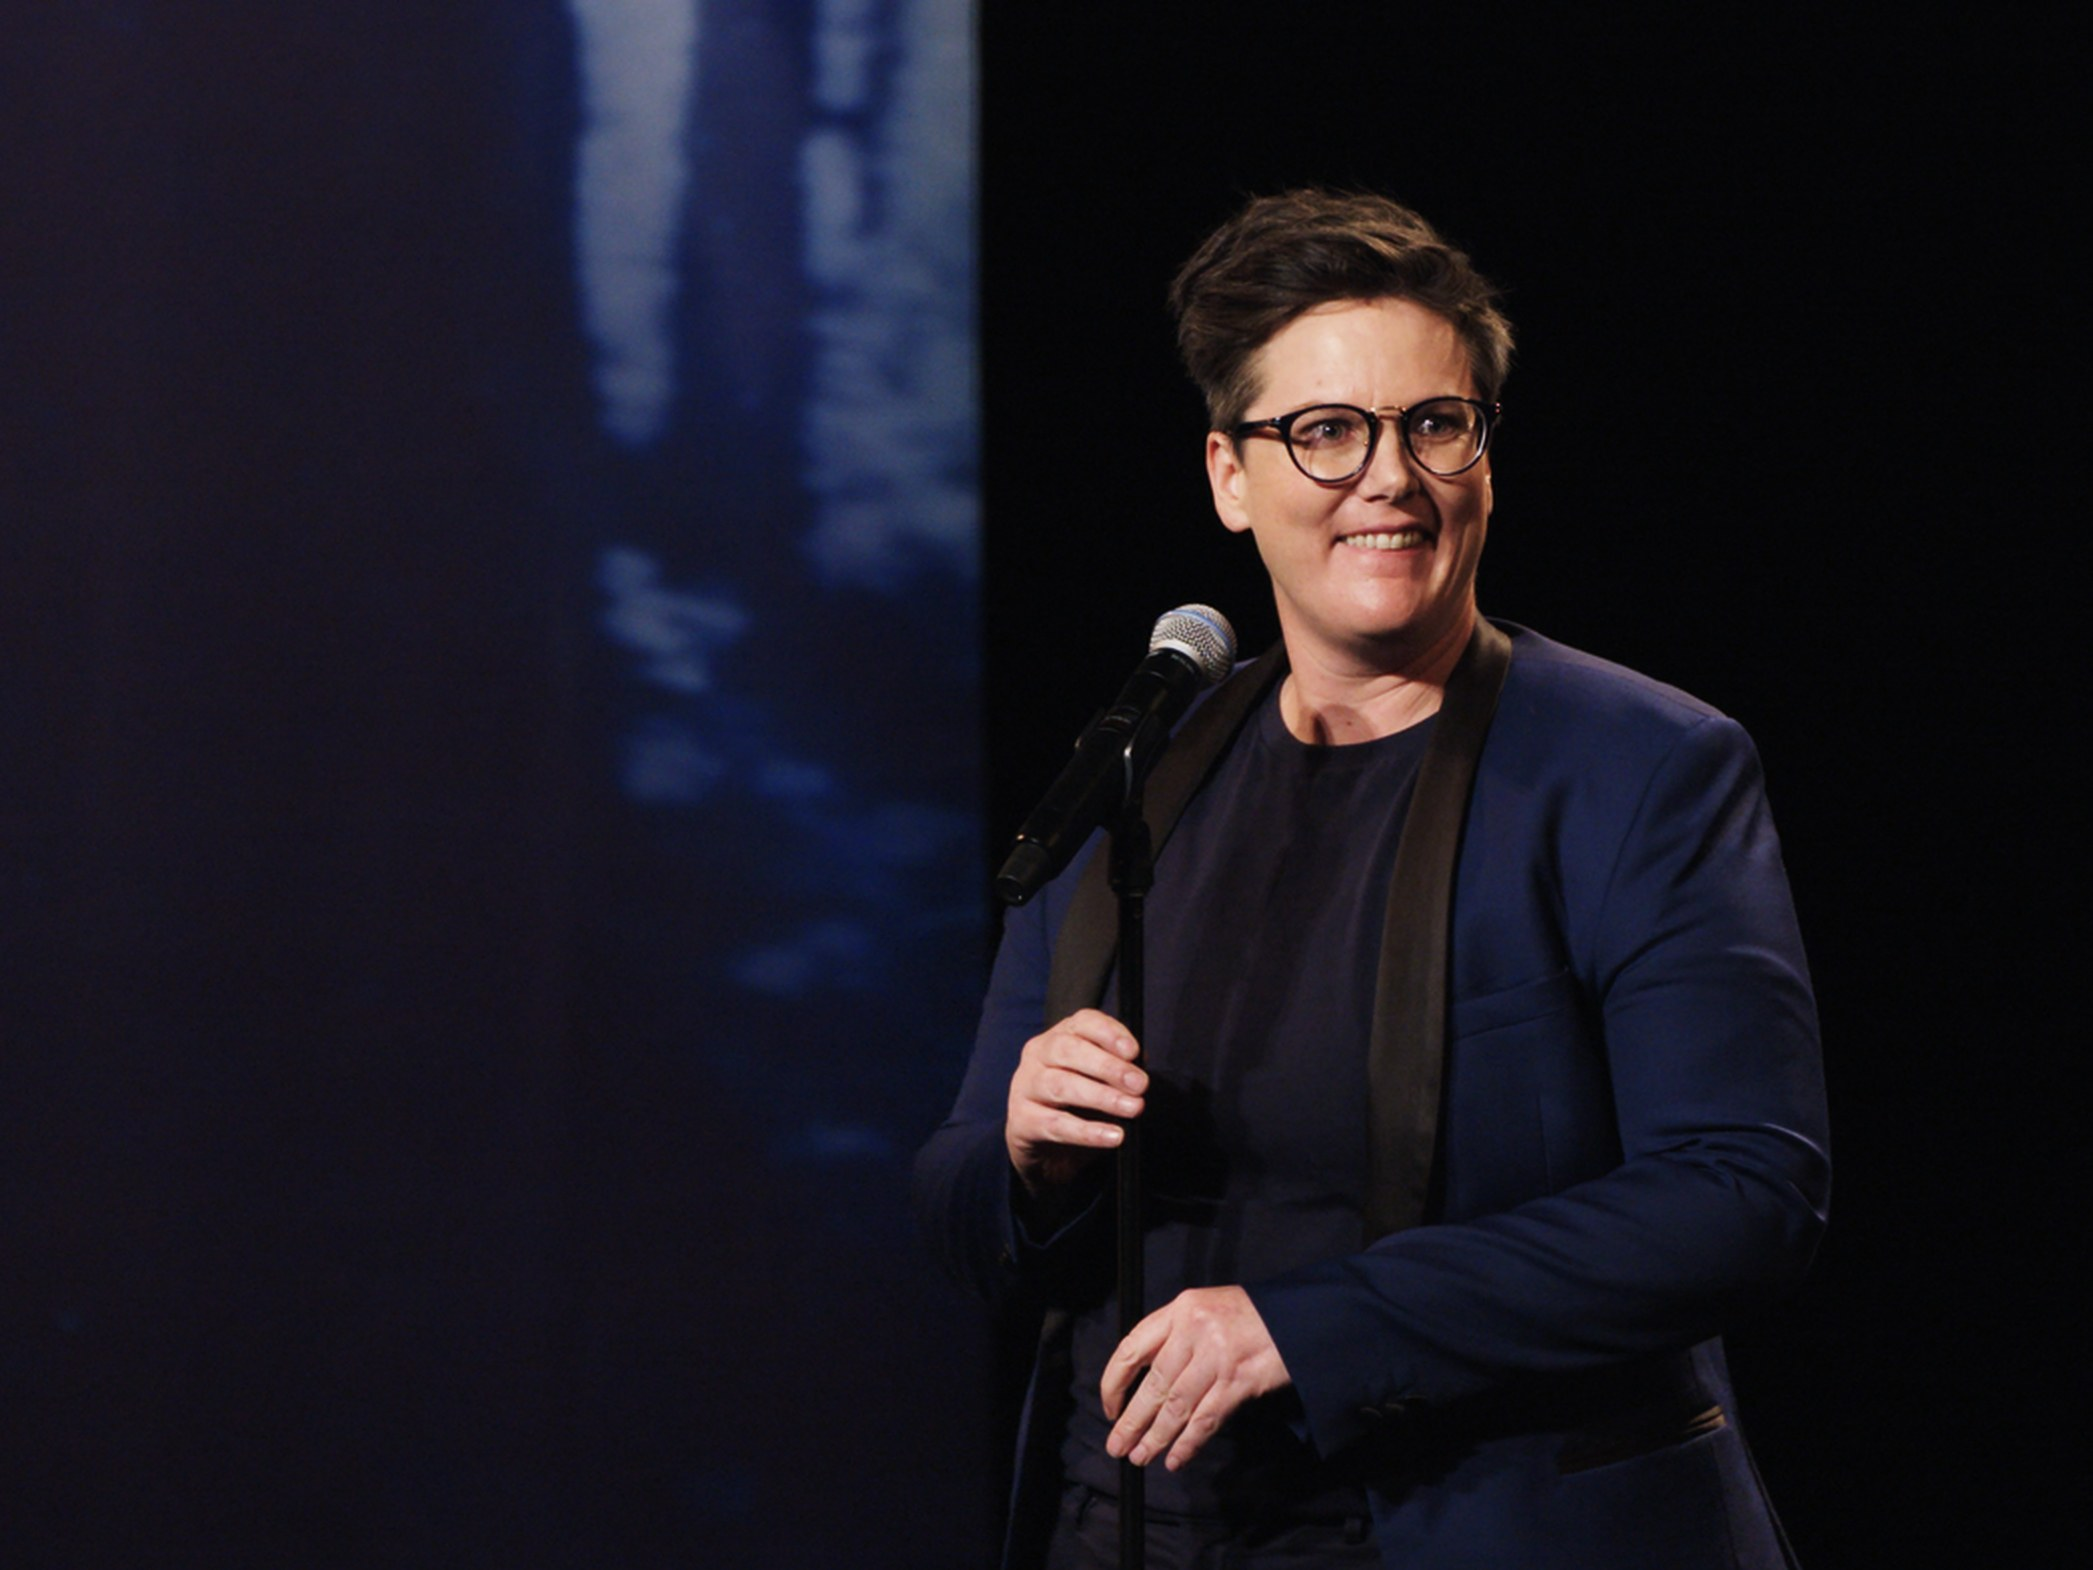 Hannah Gadsby is rumoured to be the next Oscars host